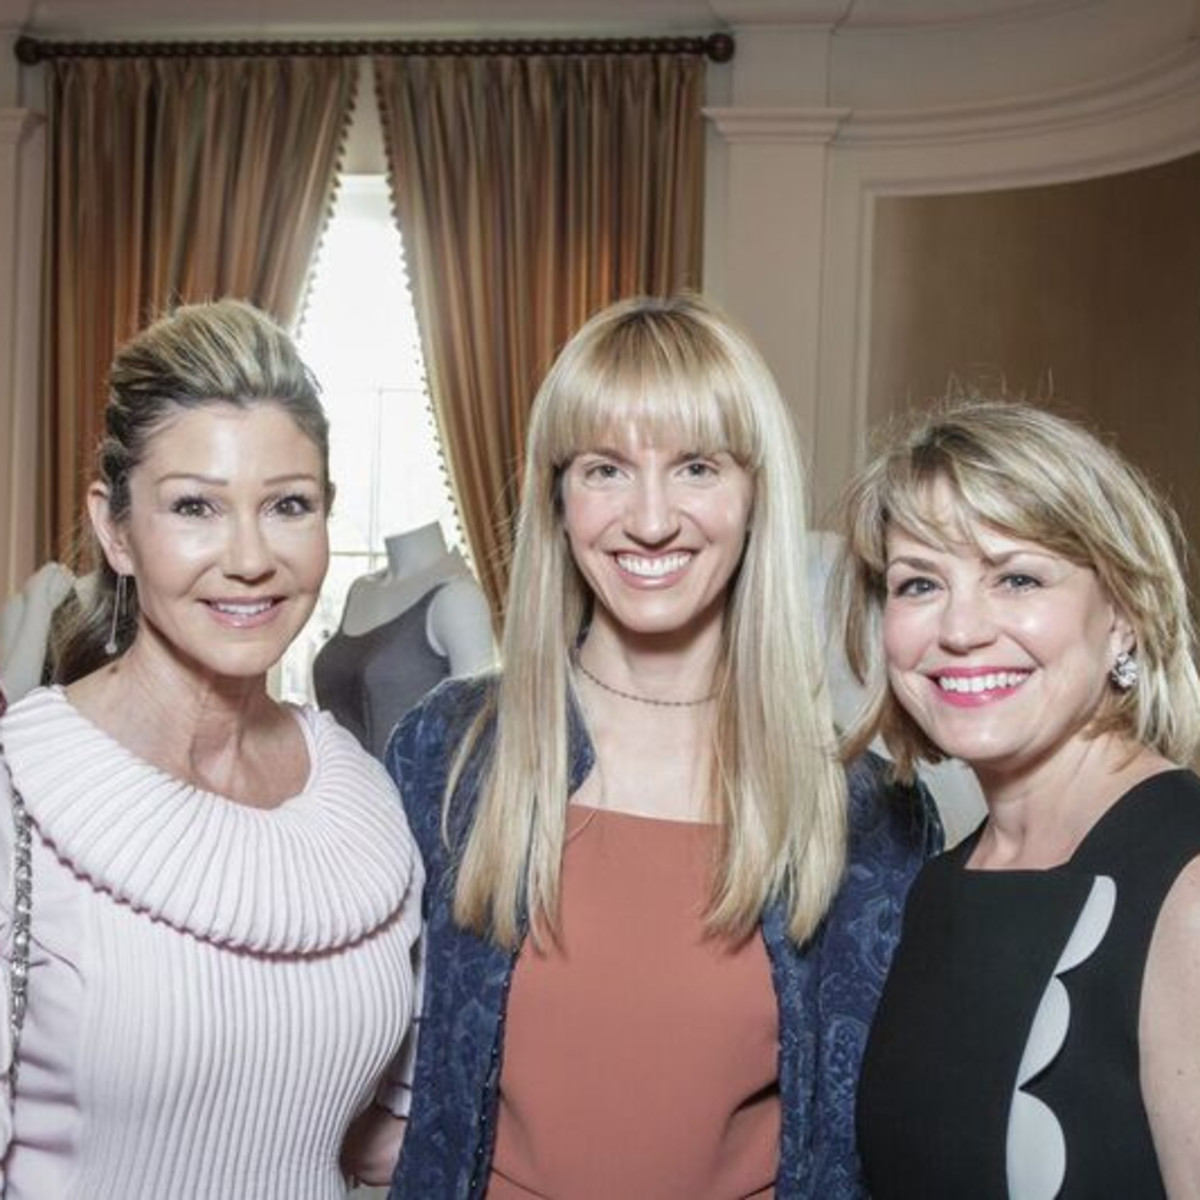 Patti Murphy, Chris Goins, Kelly Lubanko at Passion for Fashion luncheon